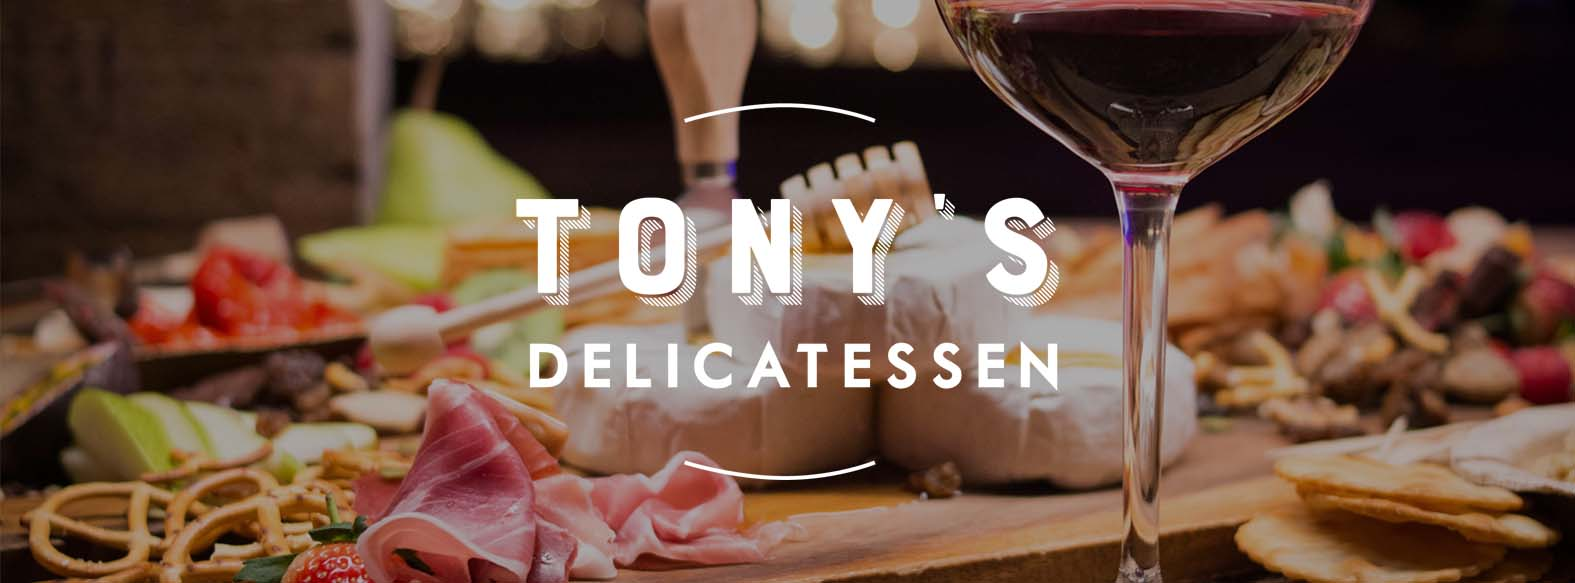 Tony's Delicatessen